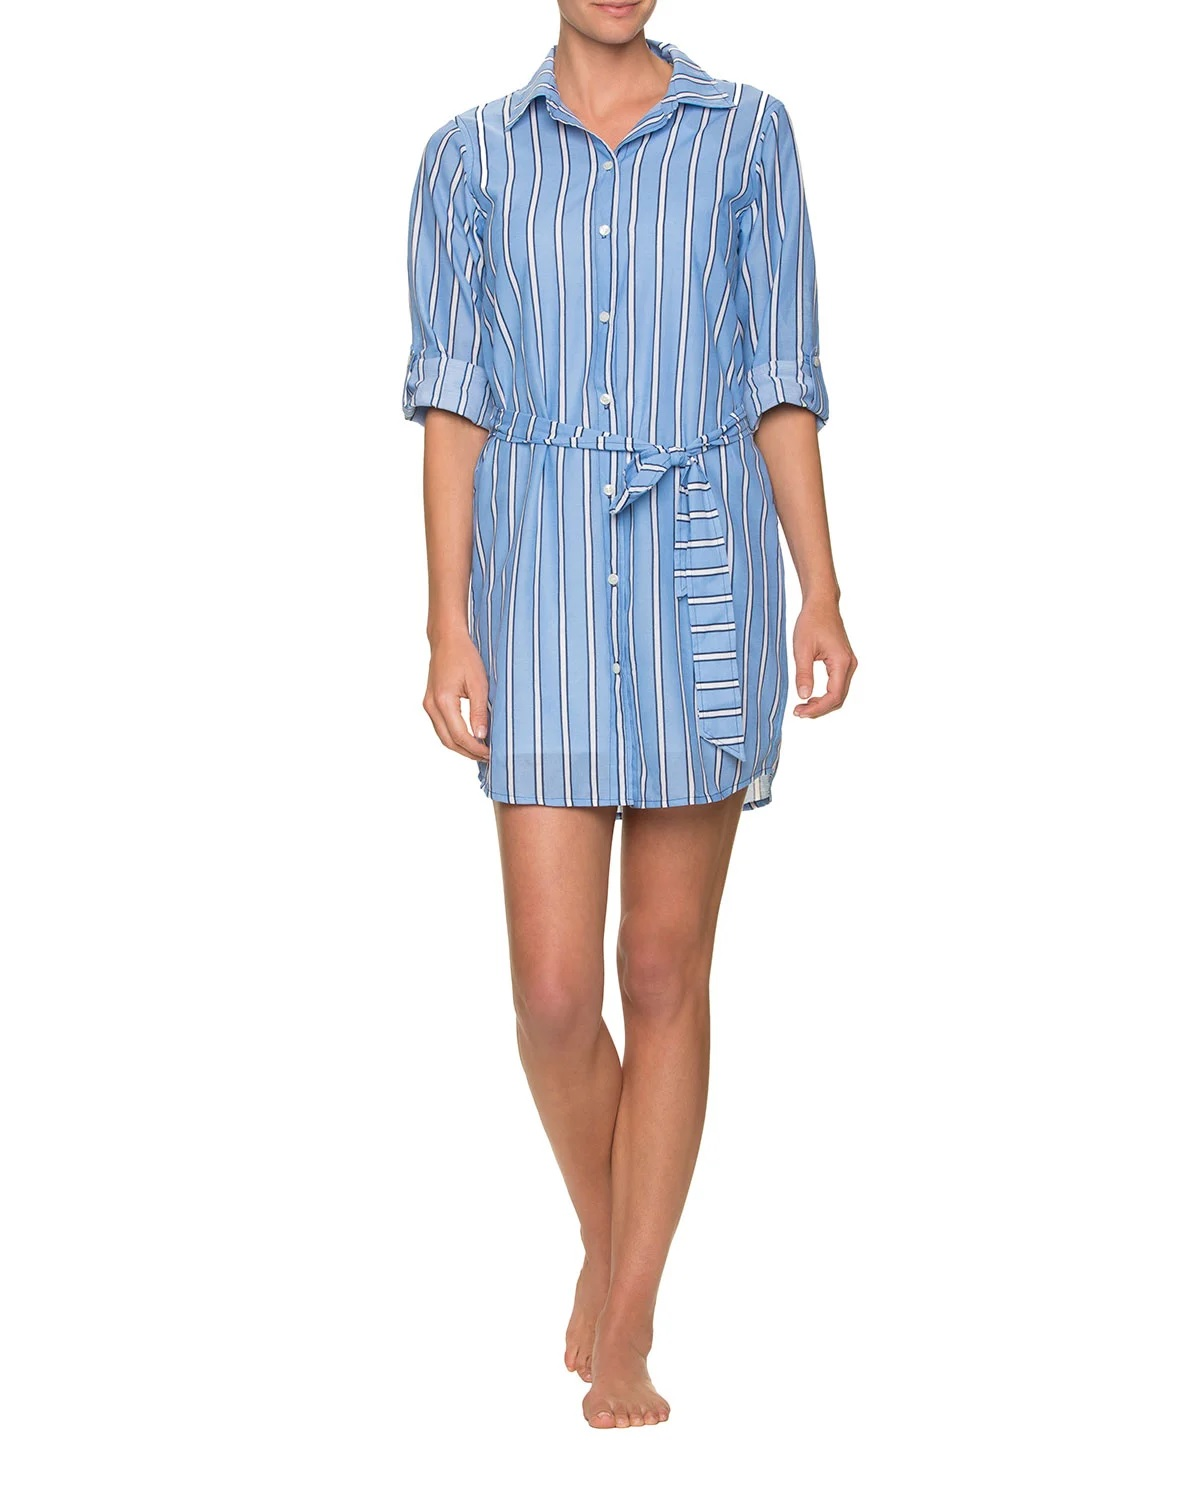 Draper James x Helen Jon Striped Cotton Shirtdress with Belt